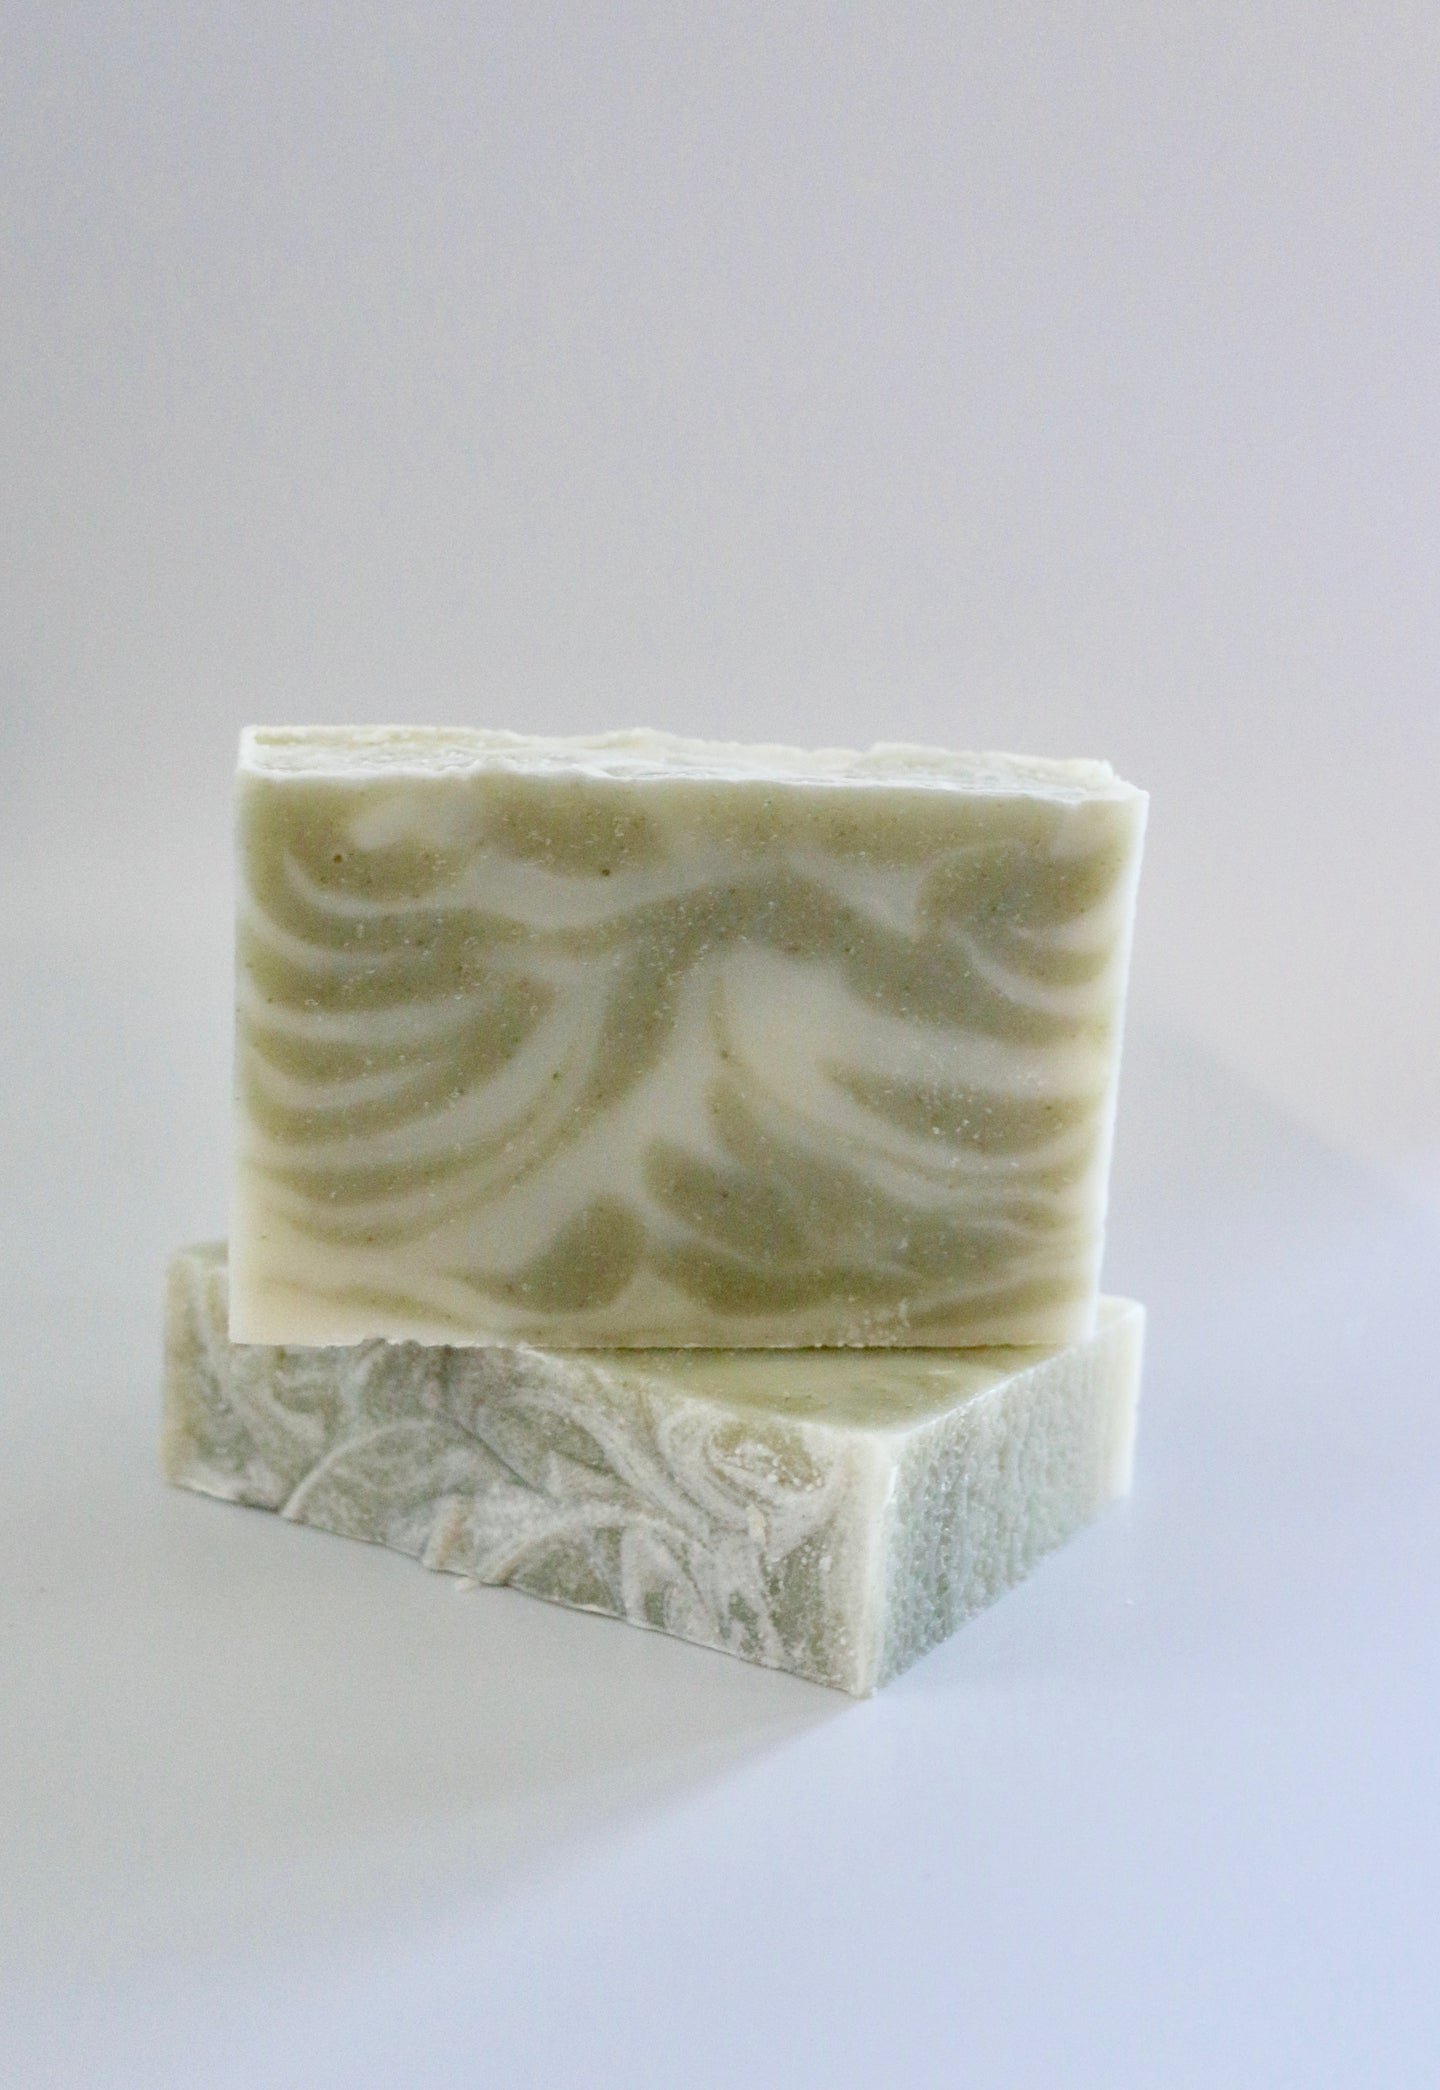 Green and white swirled natural handcrafted soap. Unscented.